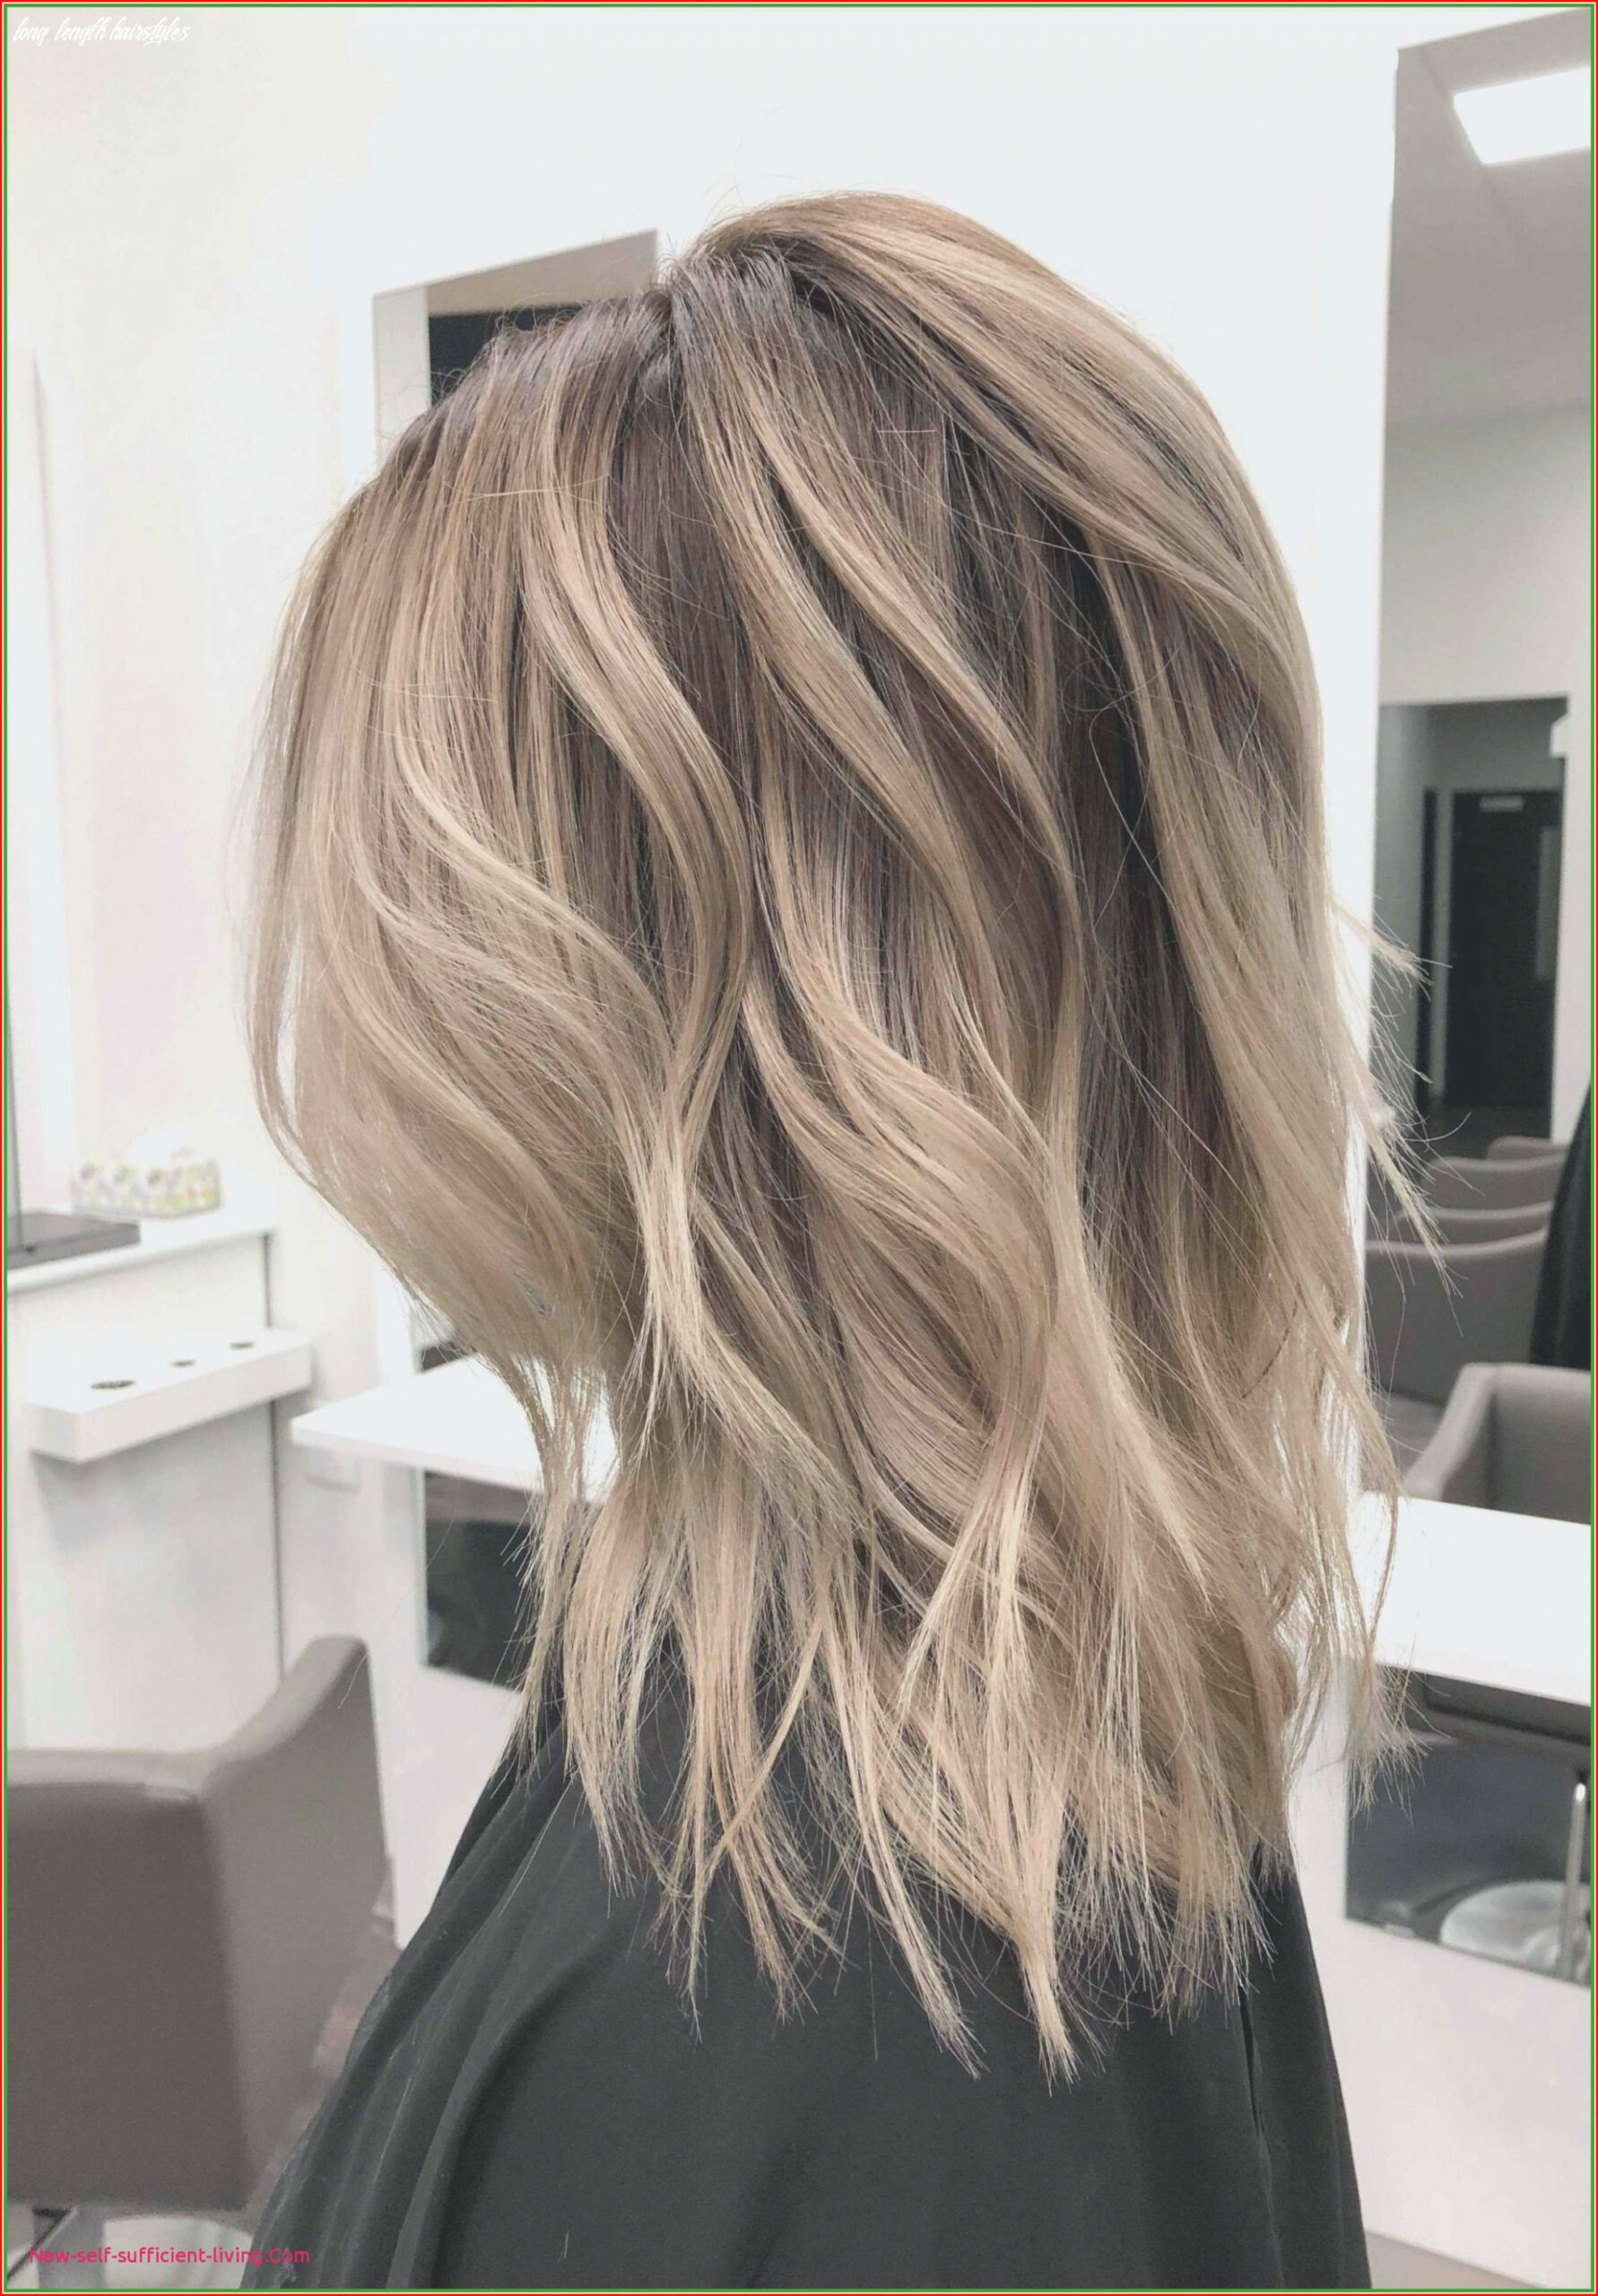 Cool long length hairstyles gallery of long hairstyles ideas 10